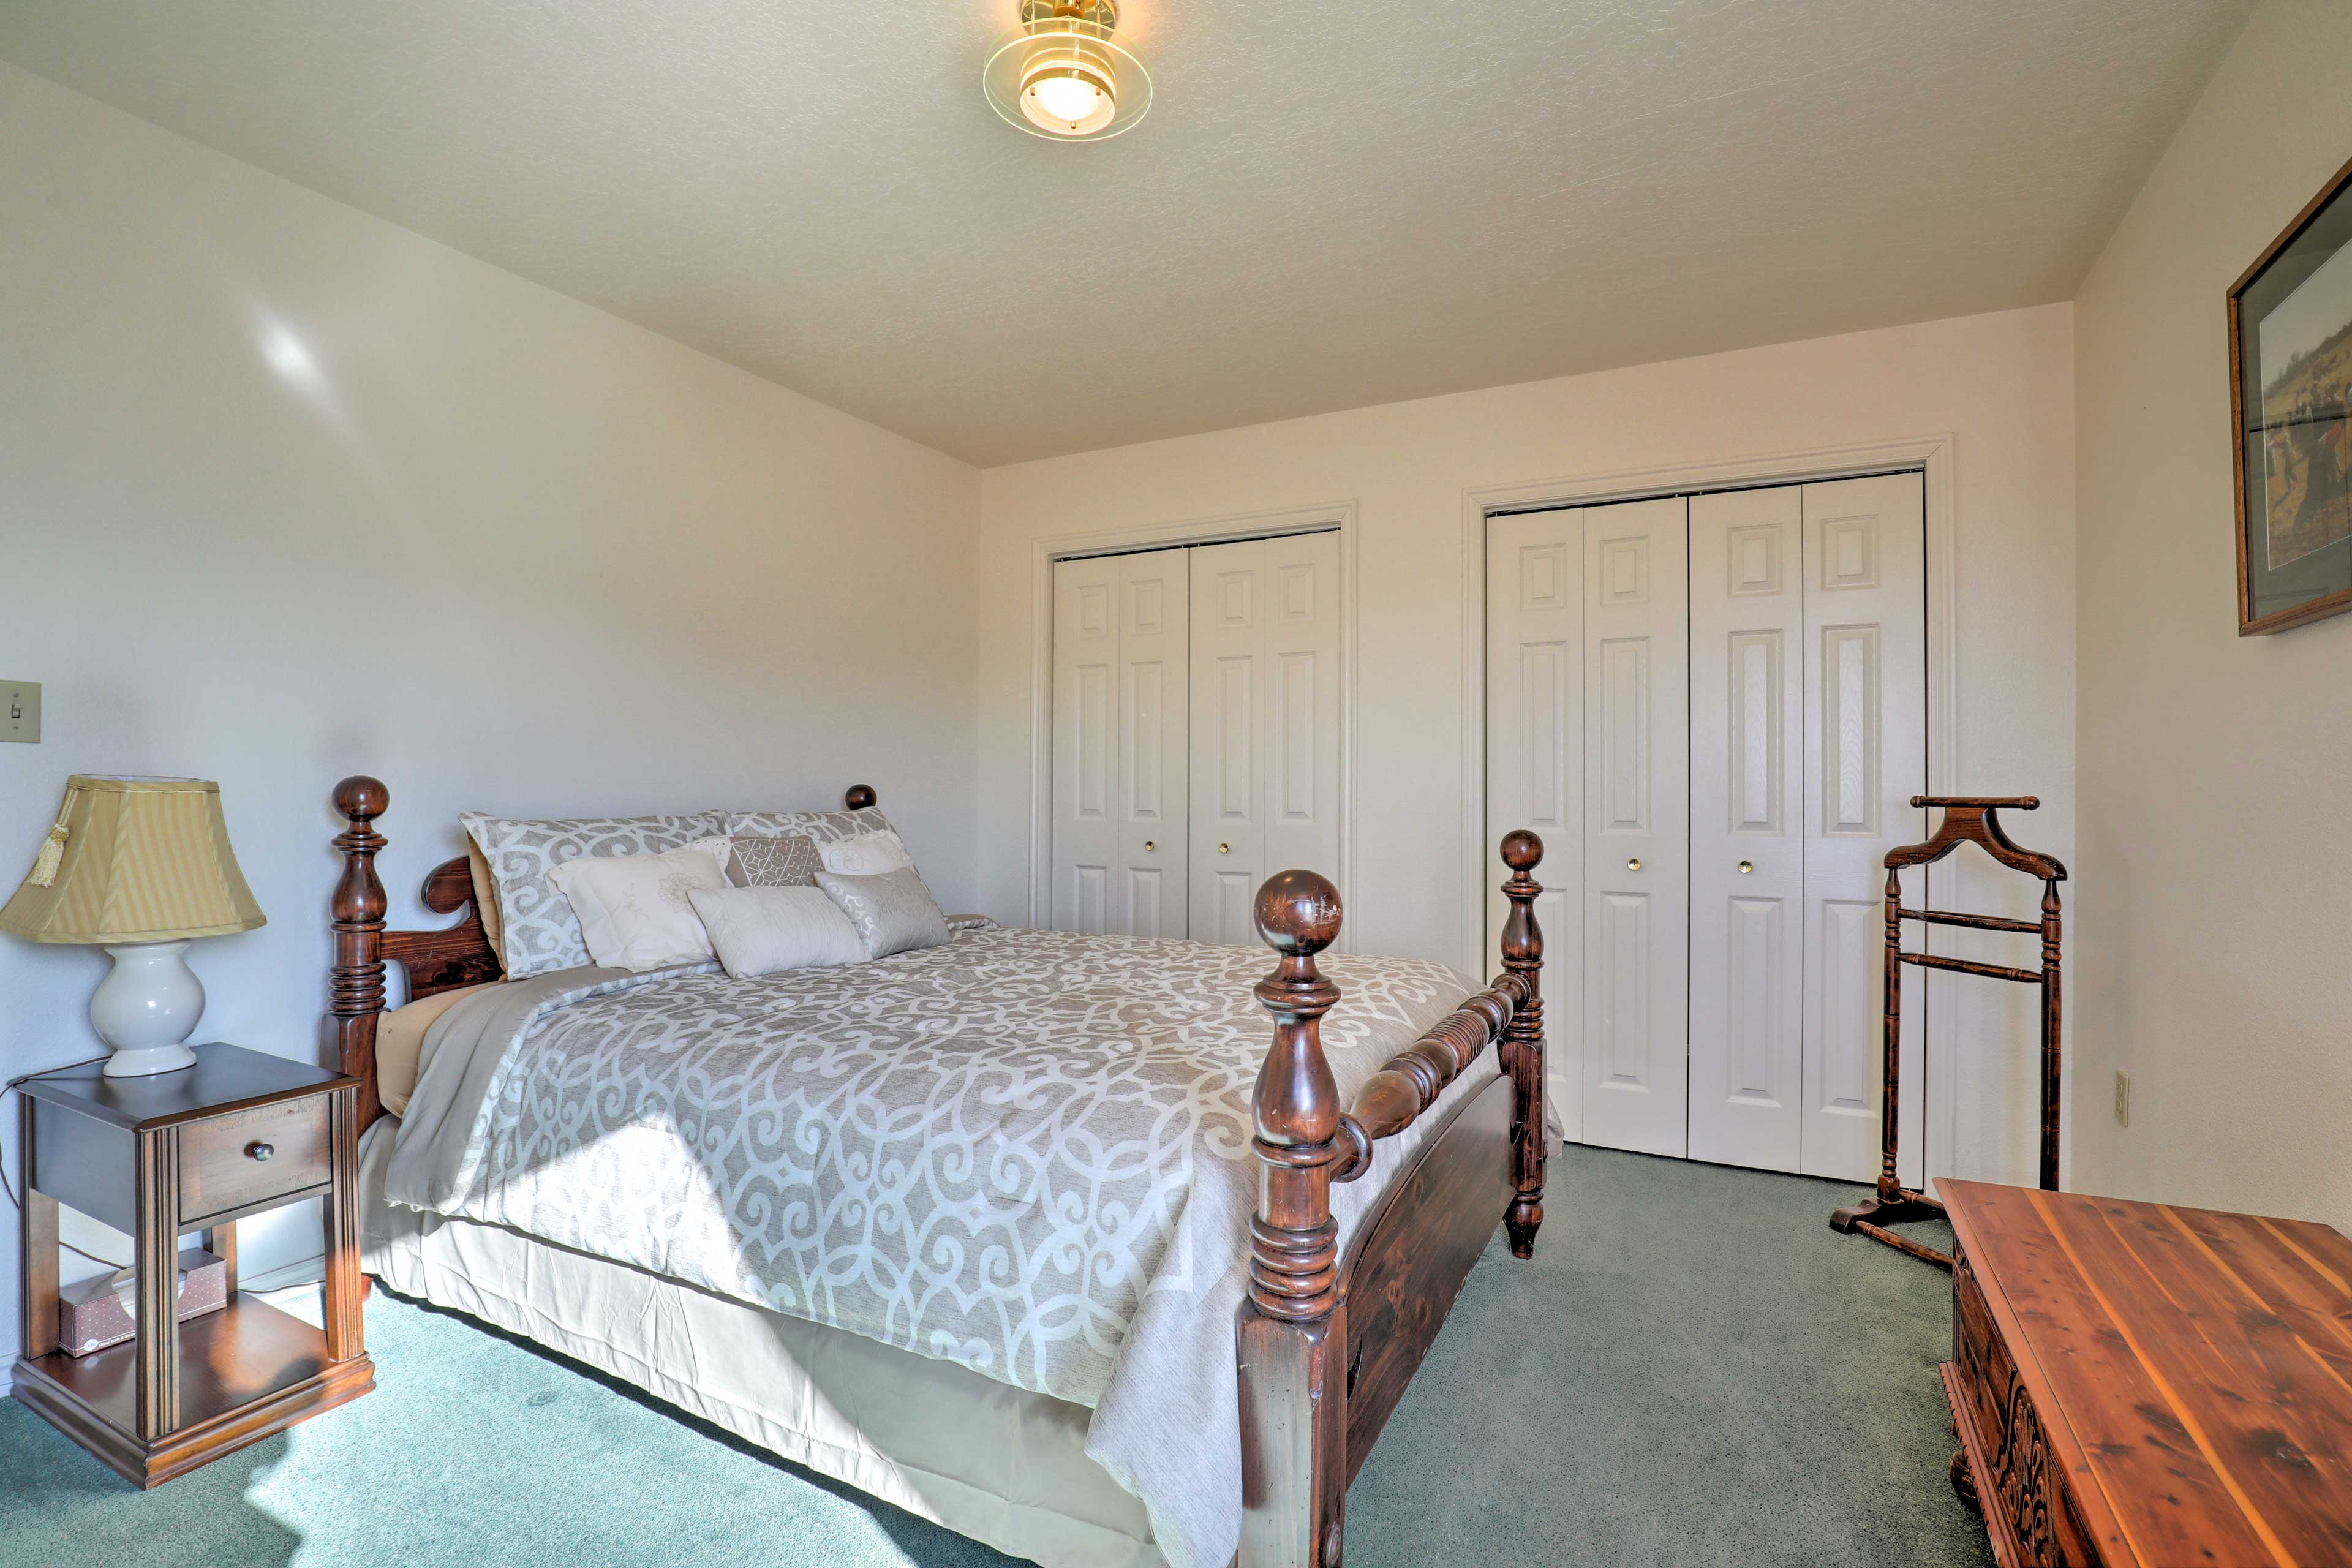 This bedroom includes 2 large closets.